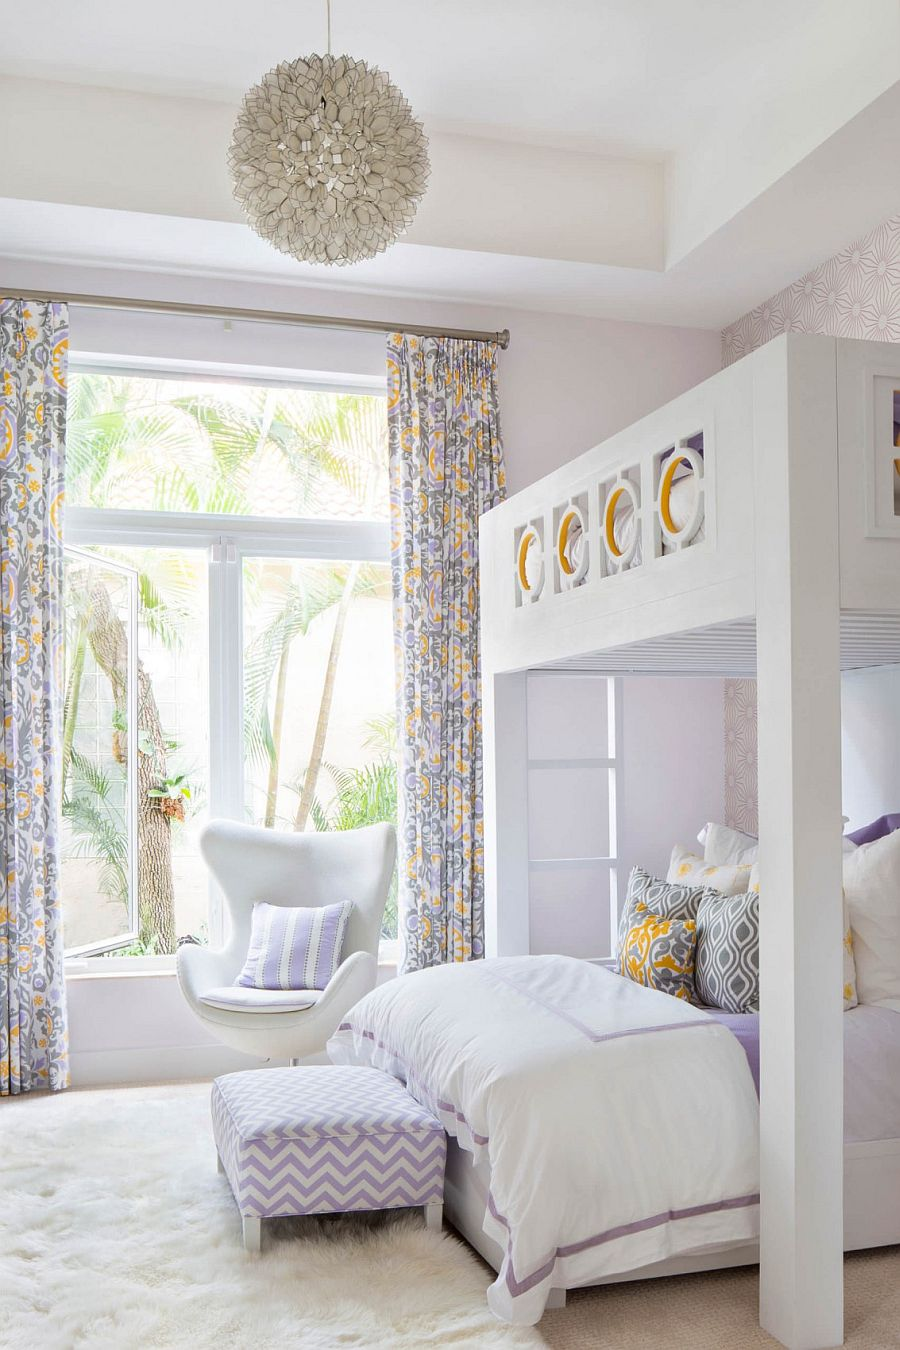 Cozy kids' bedroom with bunk beds and plush white rug